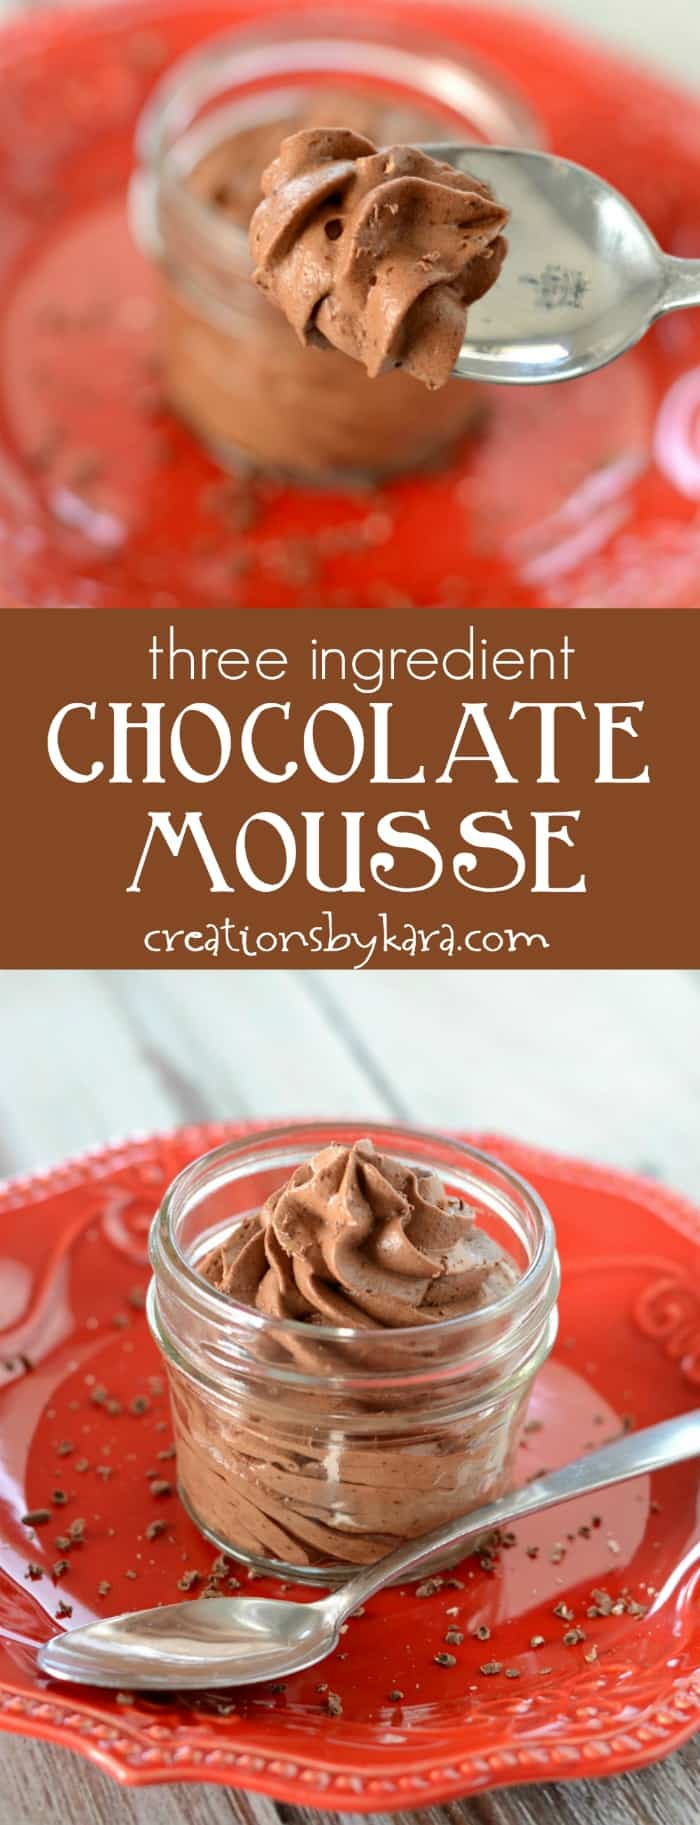 Three ingredient Chocolate Mousse - rich, creamy, and decadent. A simple but impressive chocolate dessert.